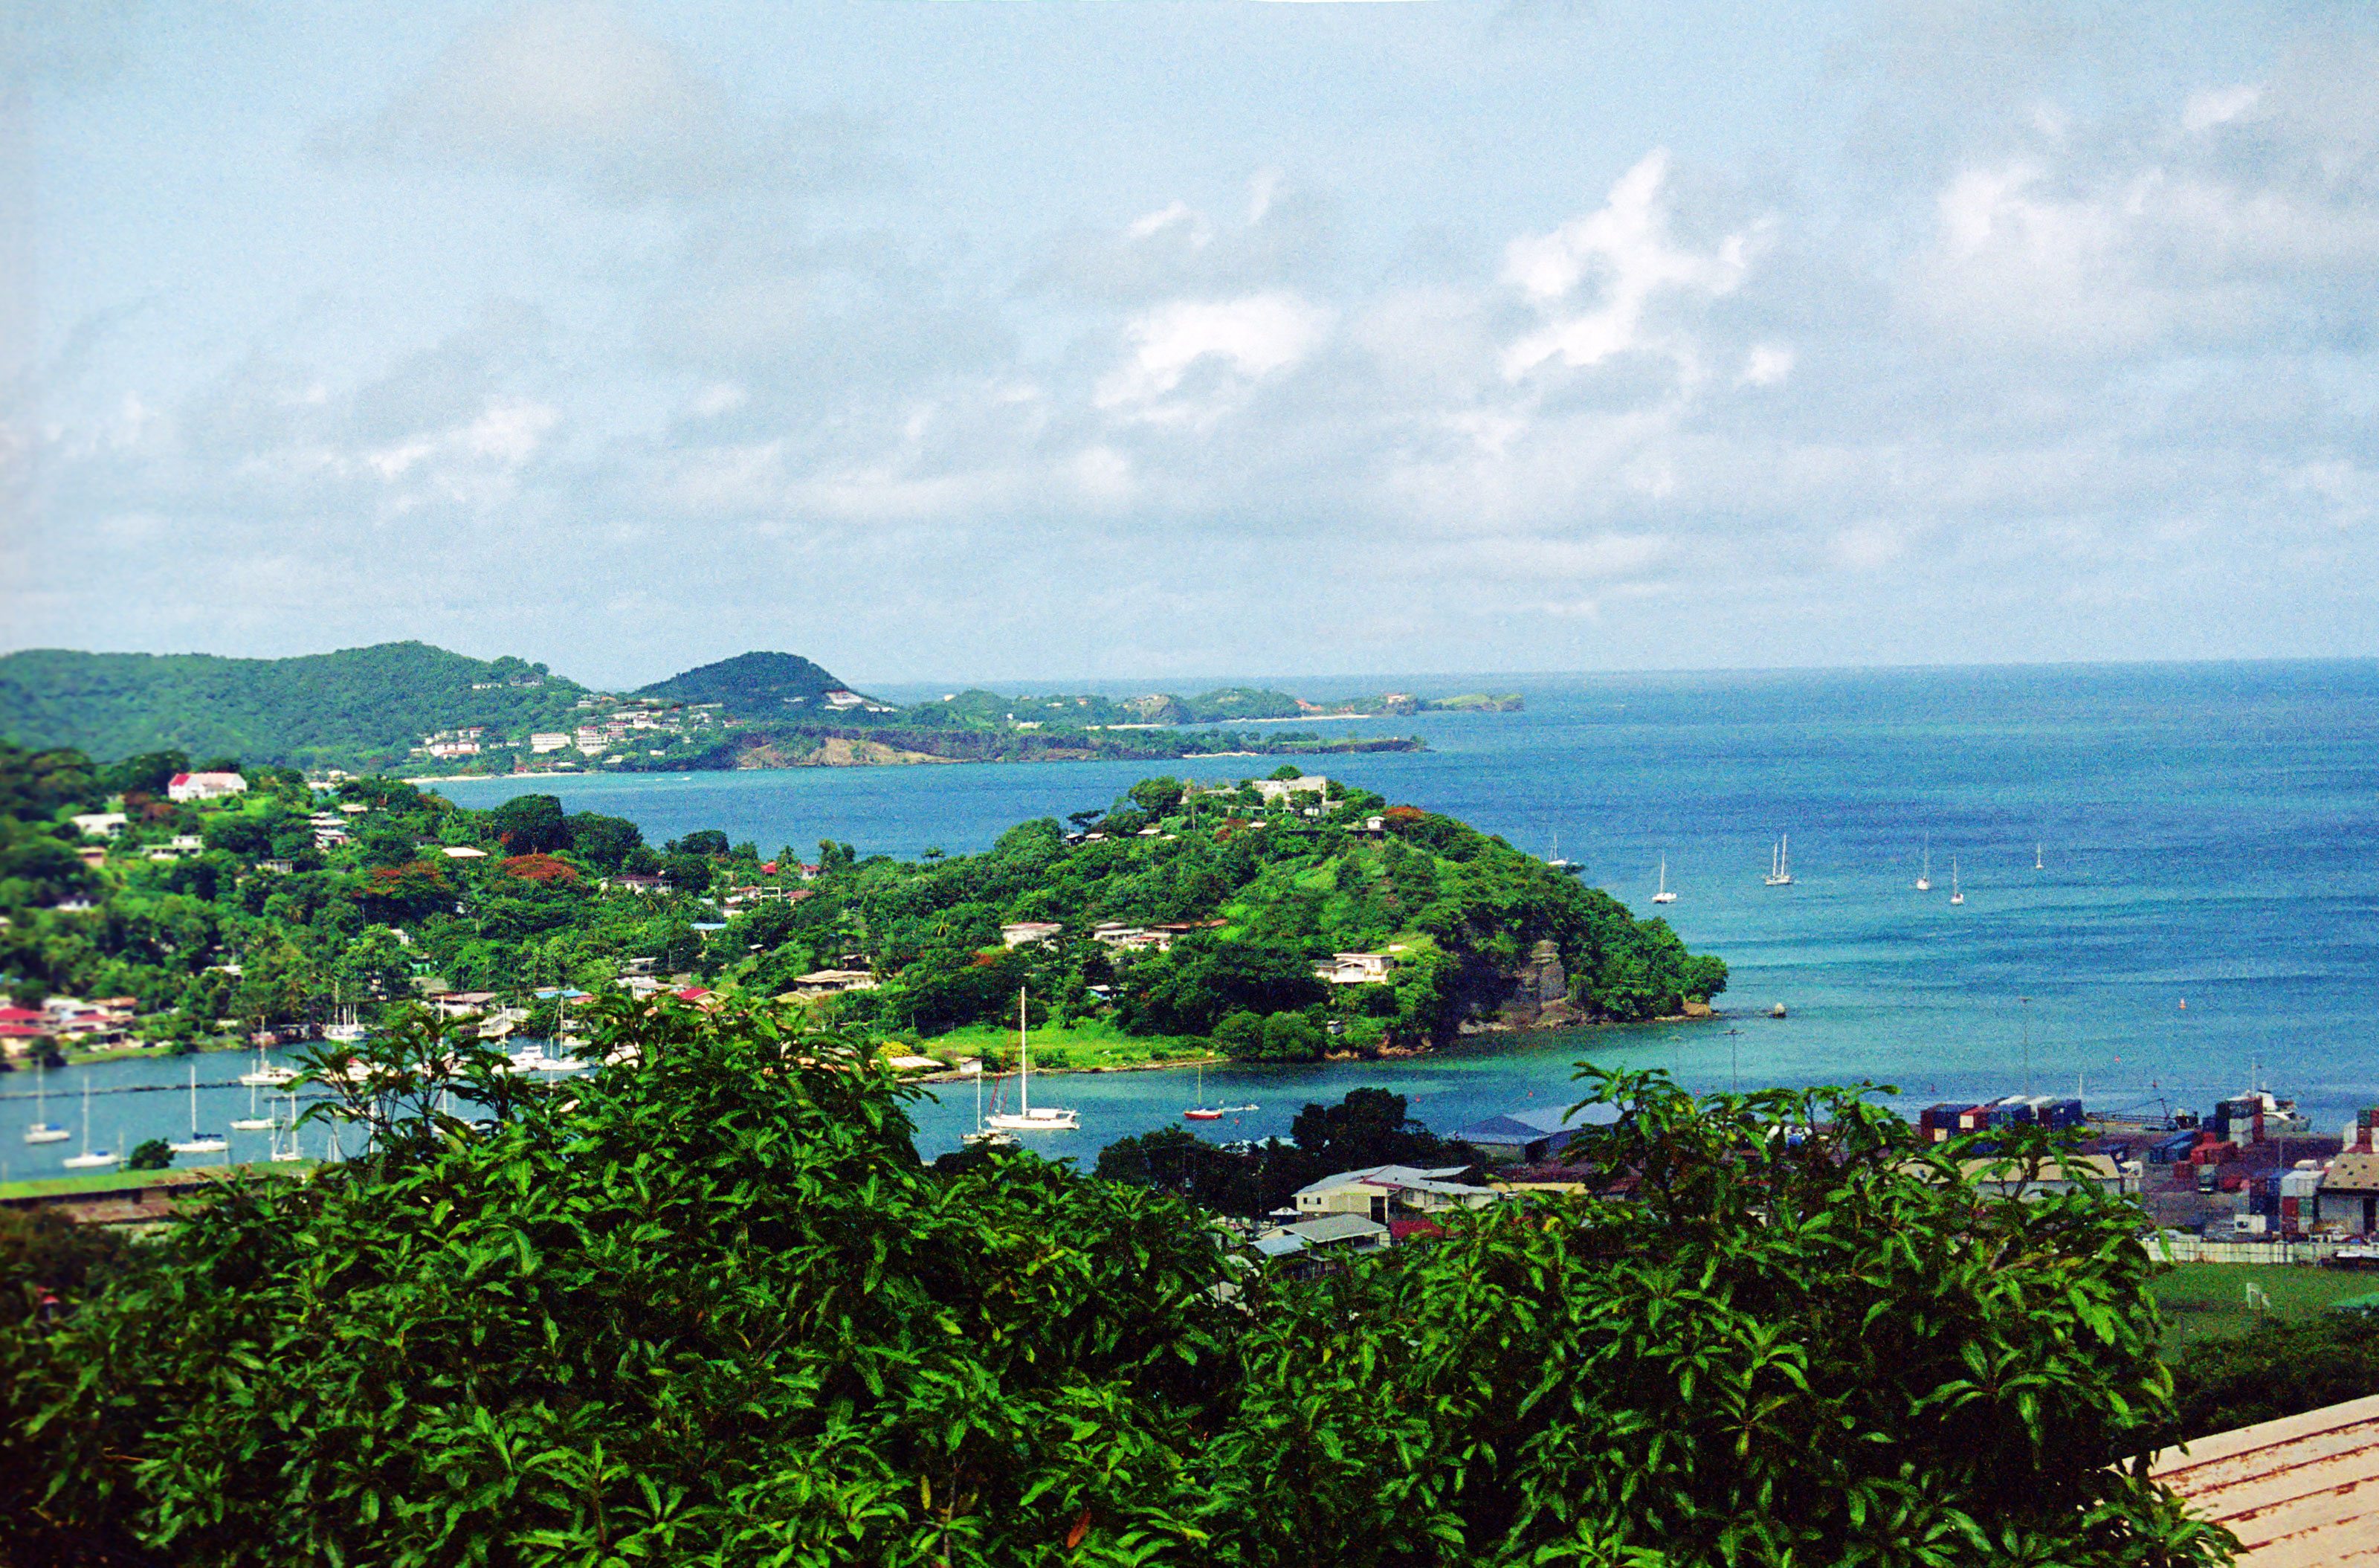 St George Grenada Travel Wallpaper and Stock Photo 3200x2109